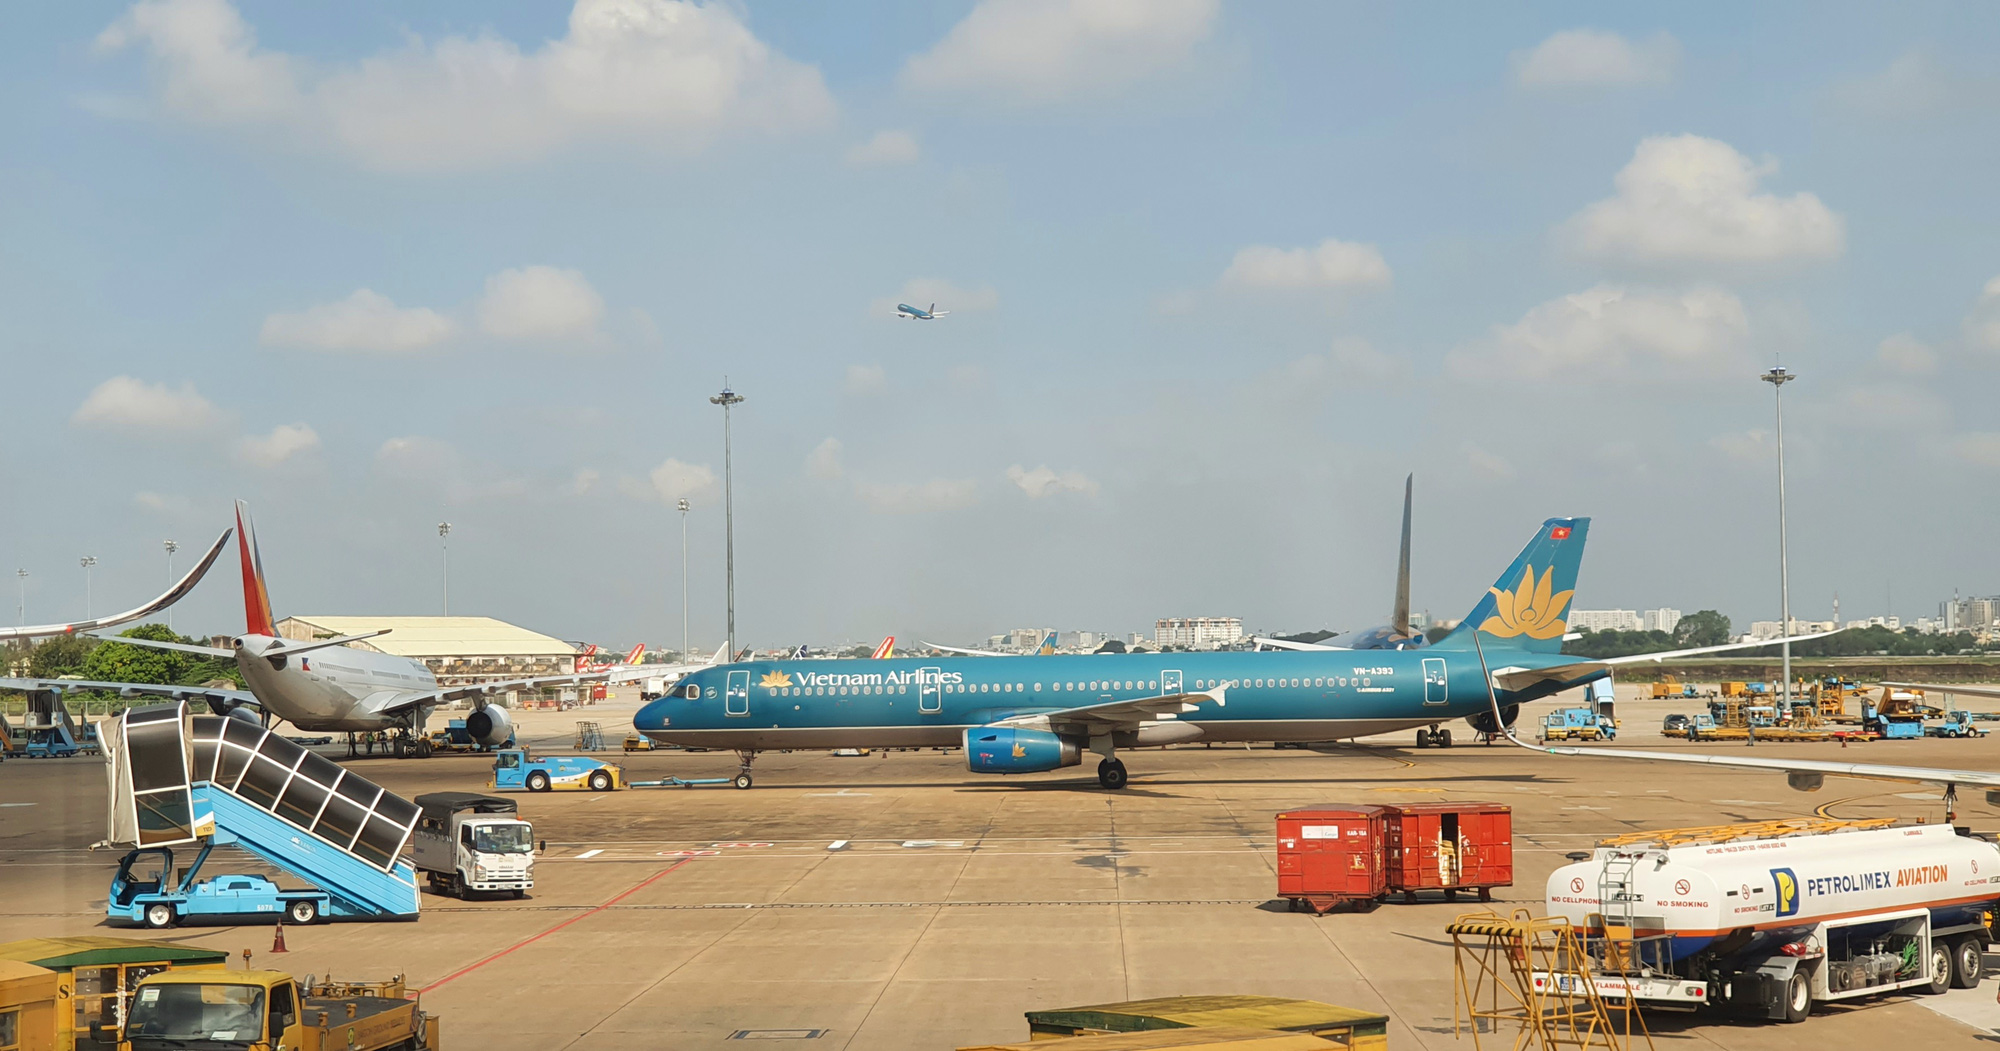 Vietnam Airlines to auction off 11 aircraft